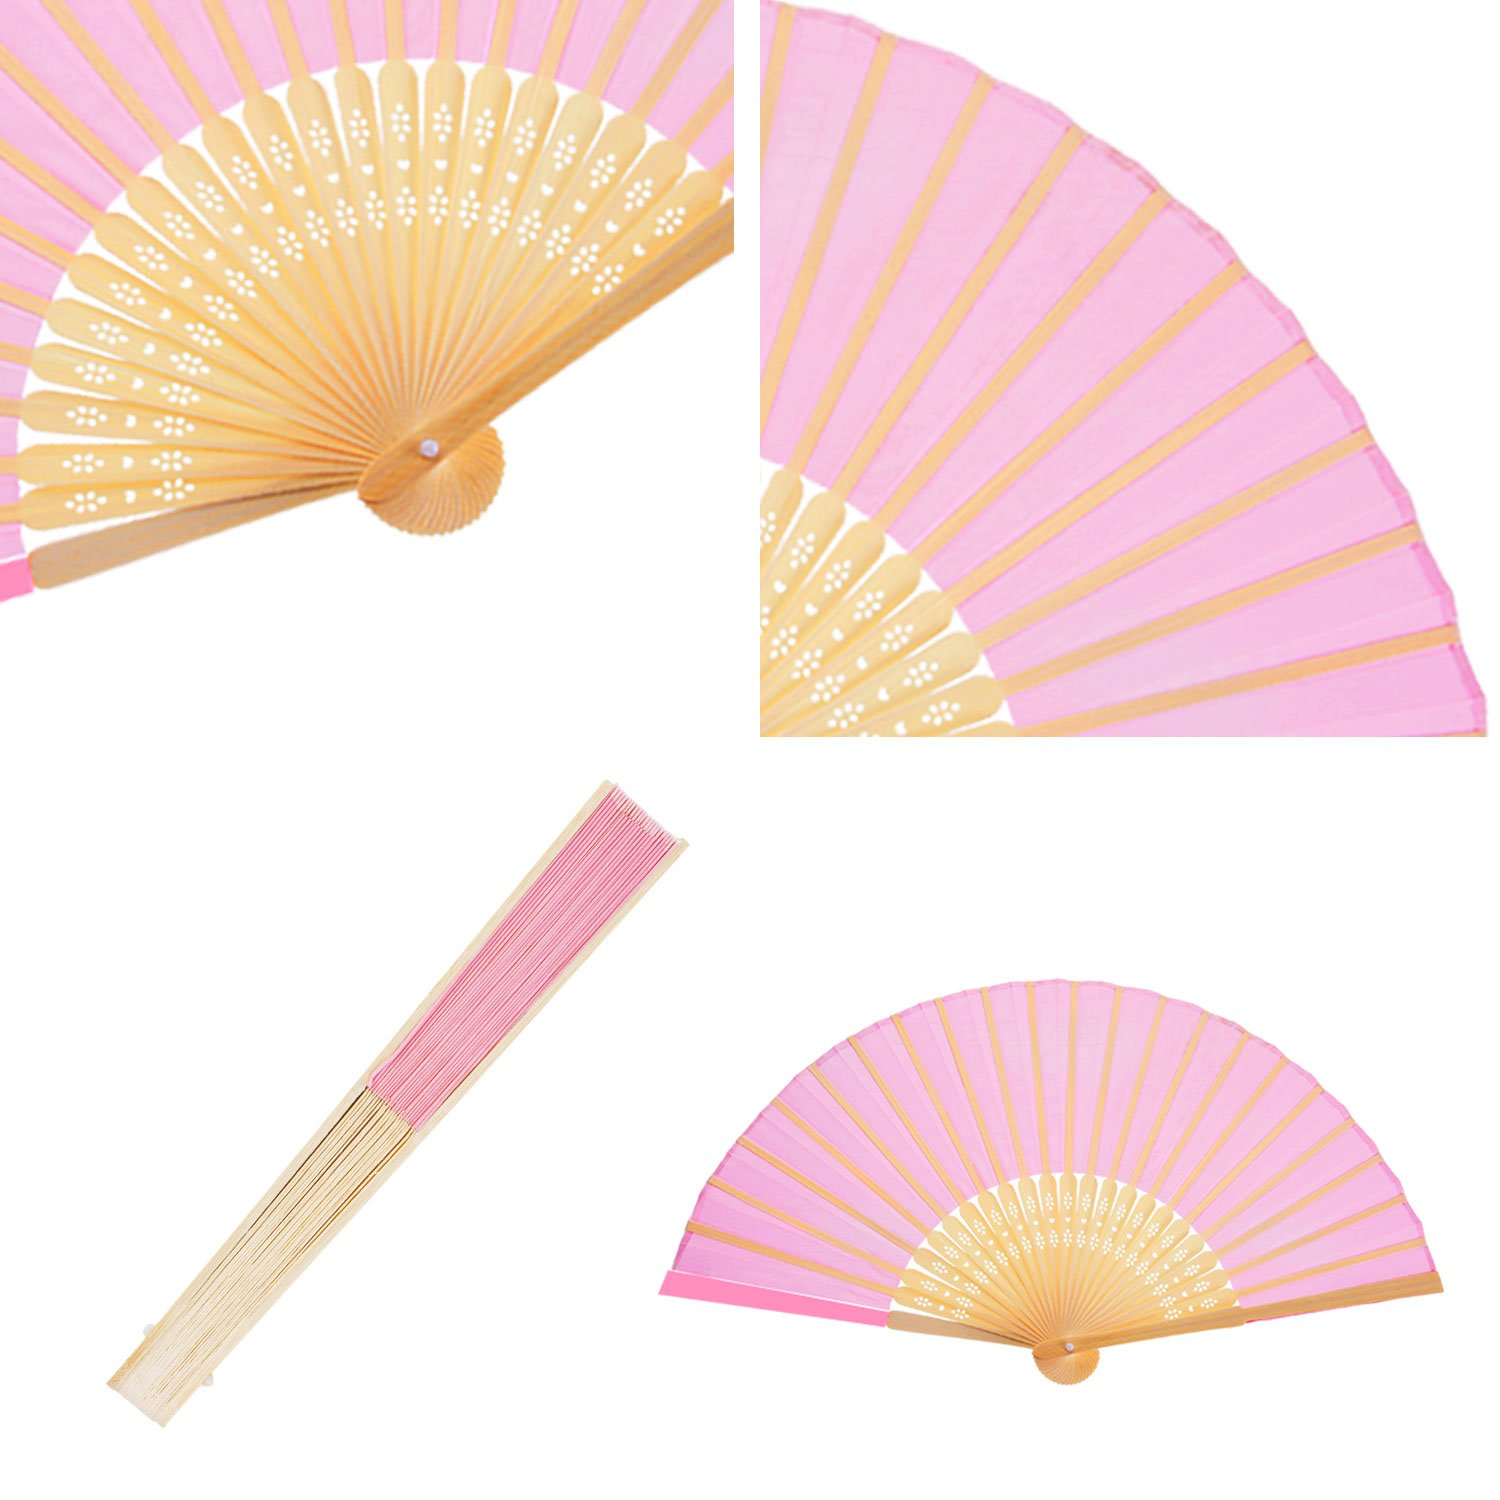 Amazon.com: Bememo 12 Pack Hand Held Fans Silk Bamboo Folding Fans ...